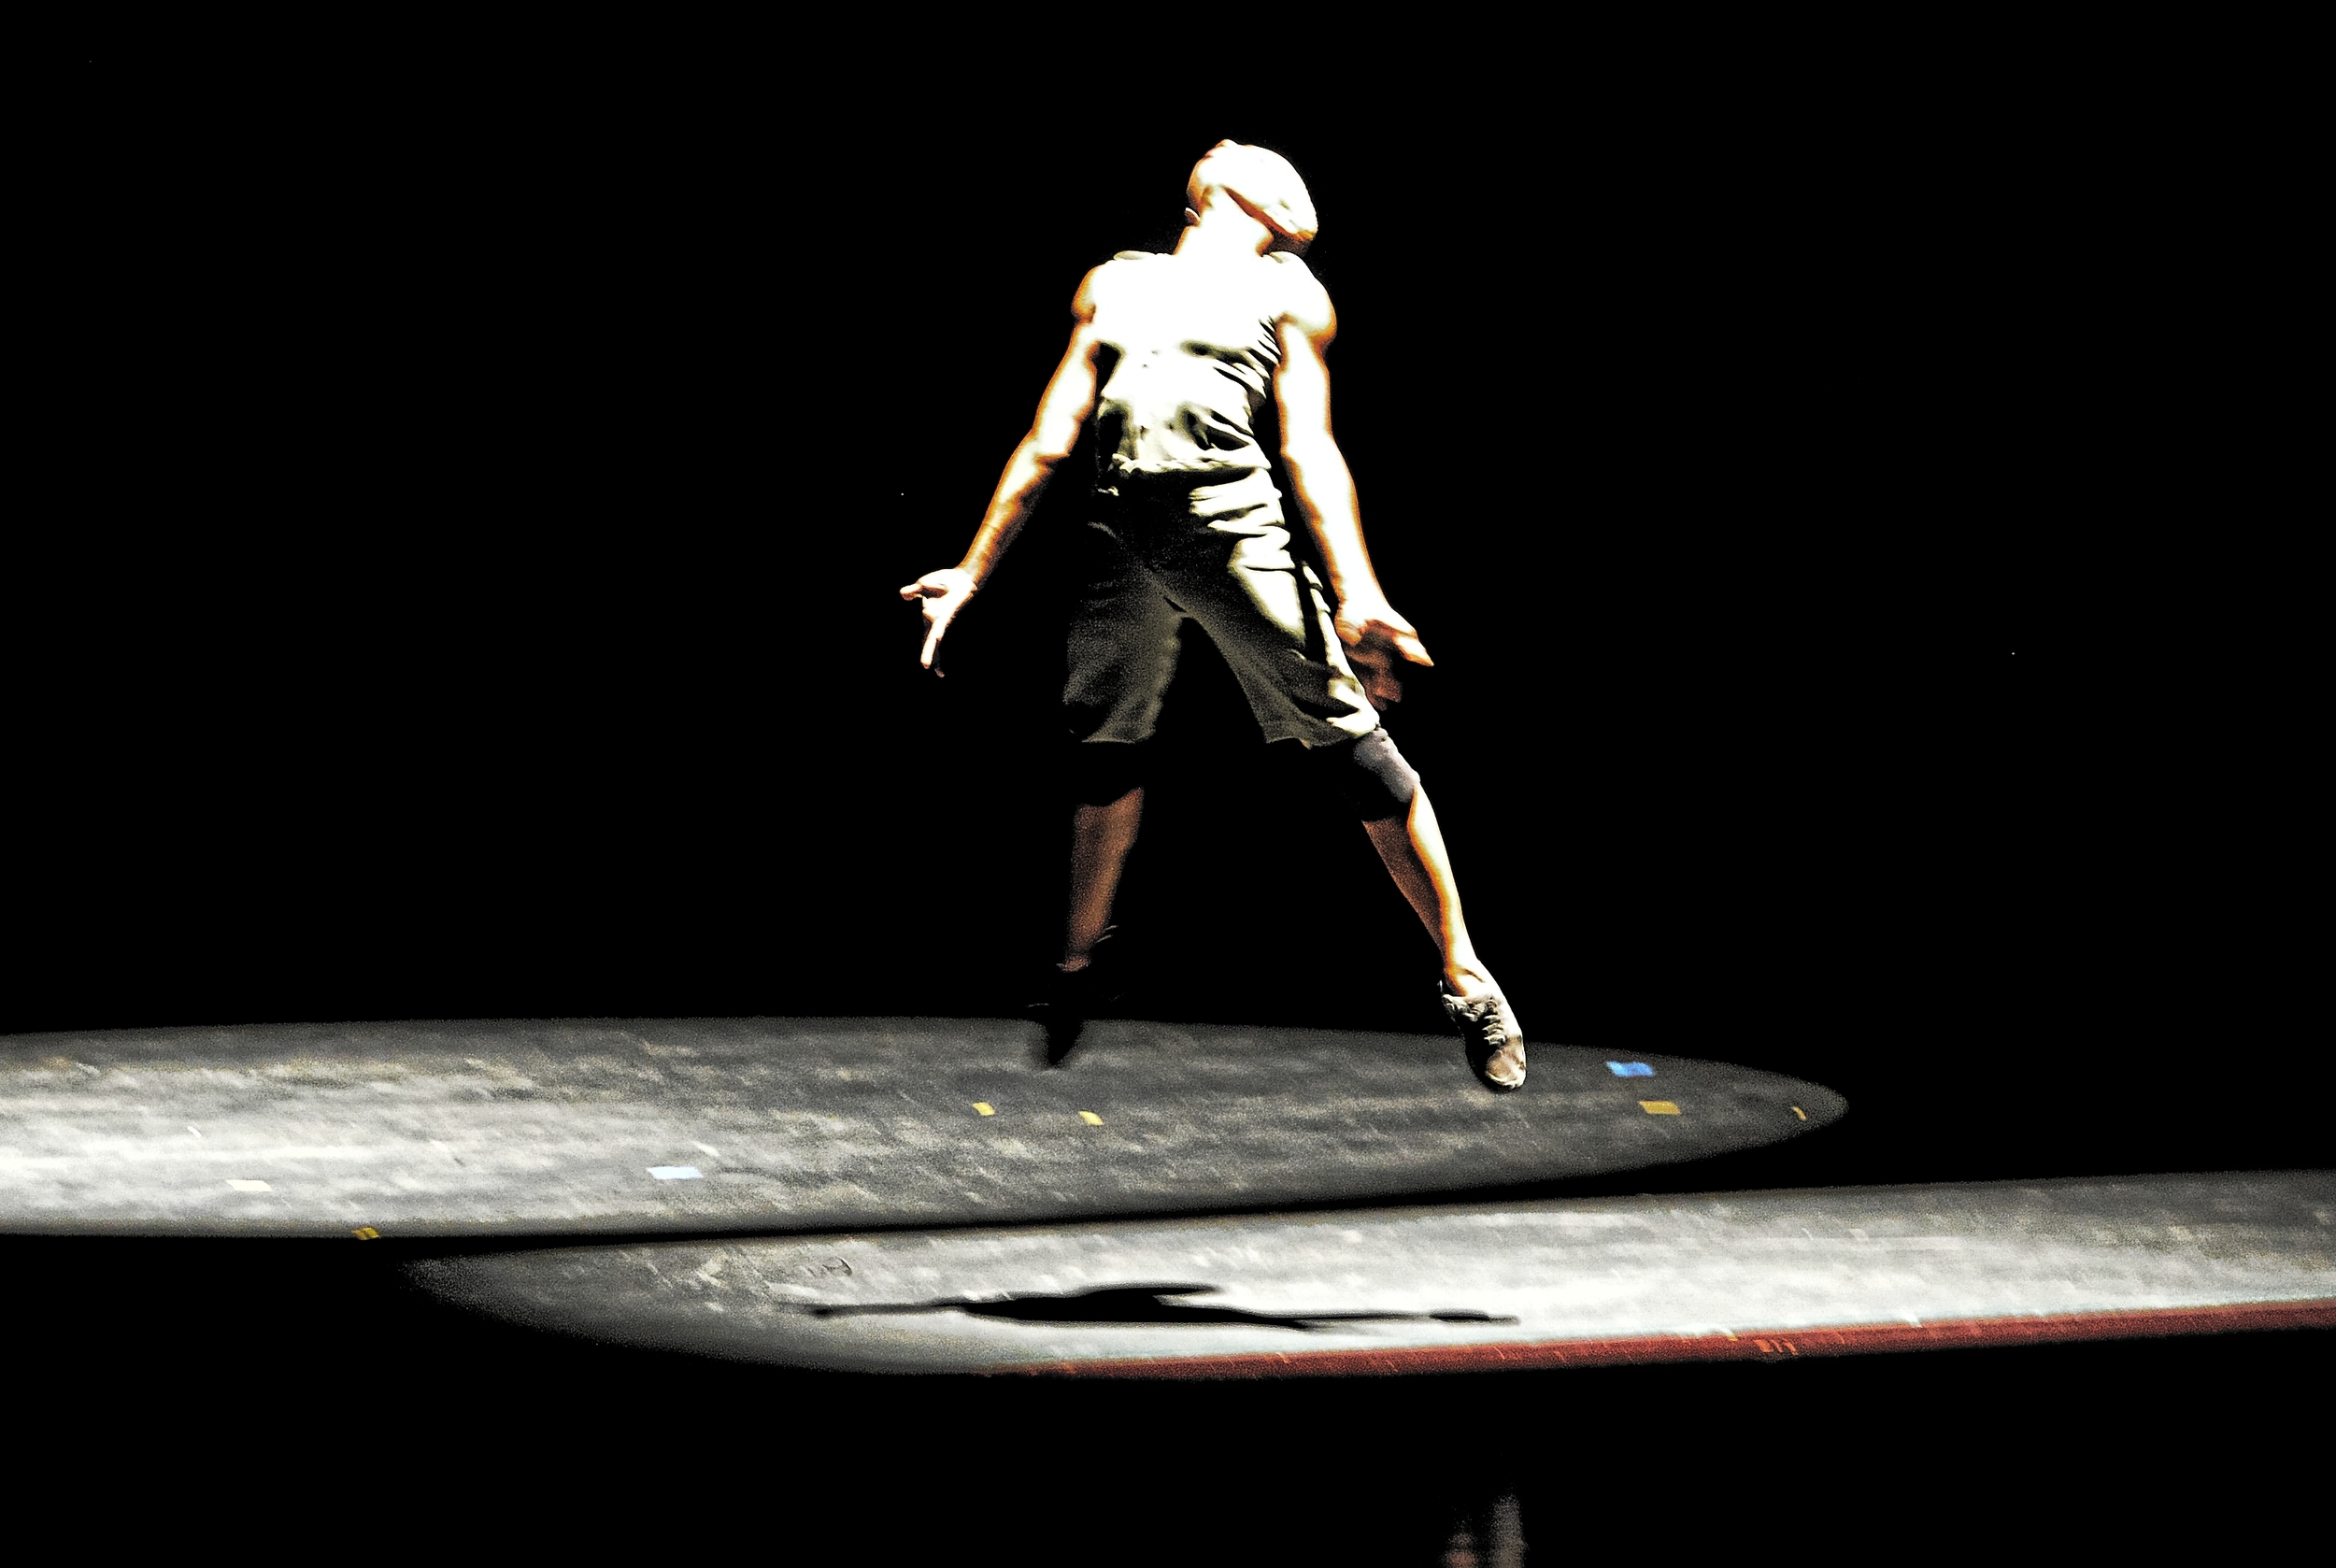 Flint (2011) -Dancer: LaShaun Prescott, Dance Comapny: Elle NYTT, Dance Show: Elle 7 Photography: Karen Johnstone, Location: National Academy of the Performing Arts, Port-of-Spain - Trinidad